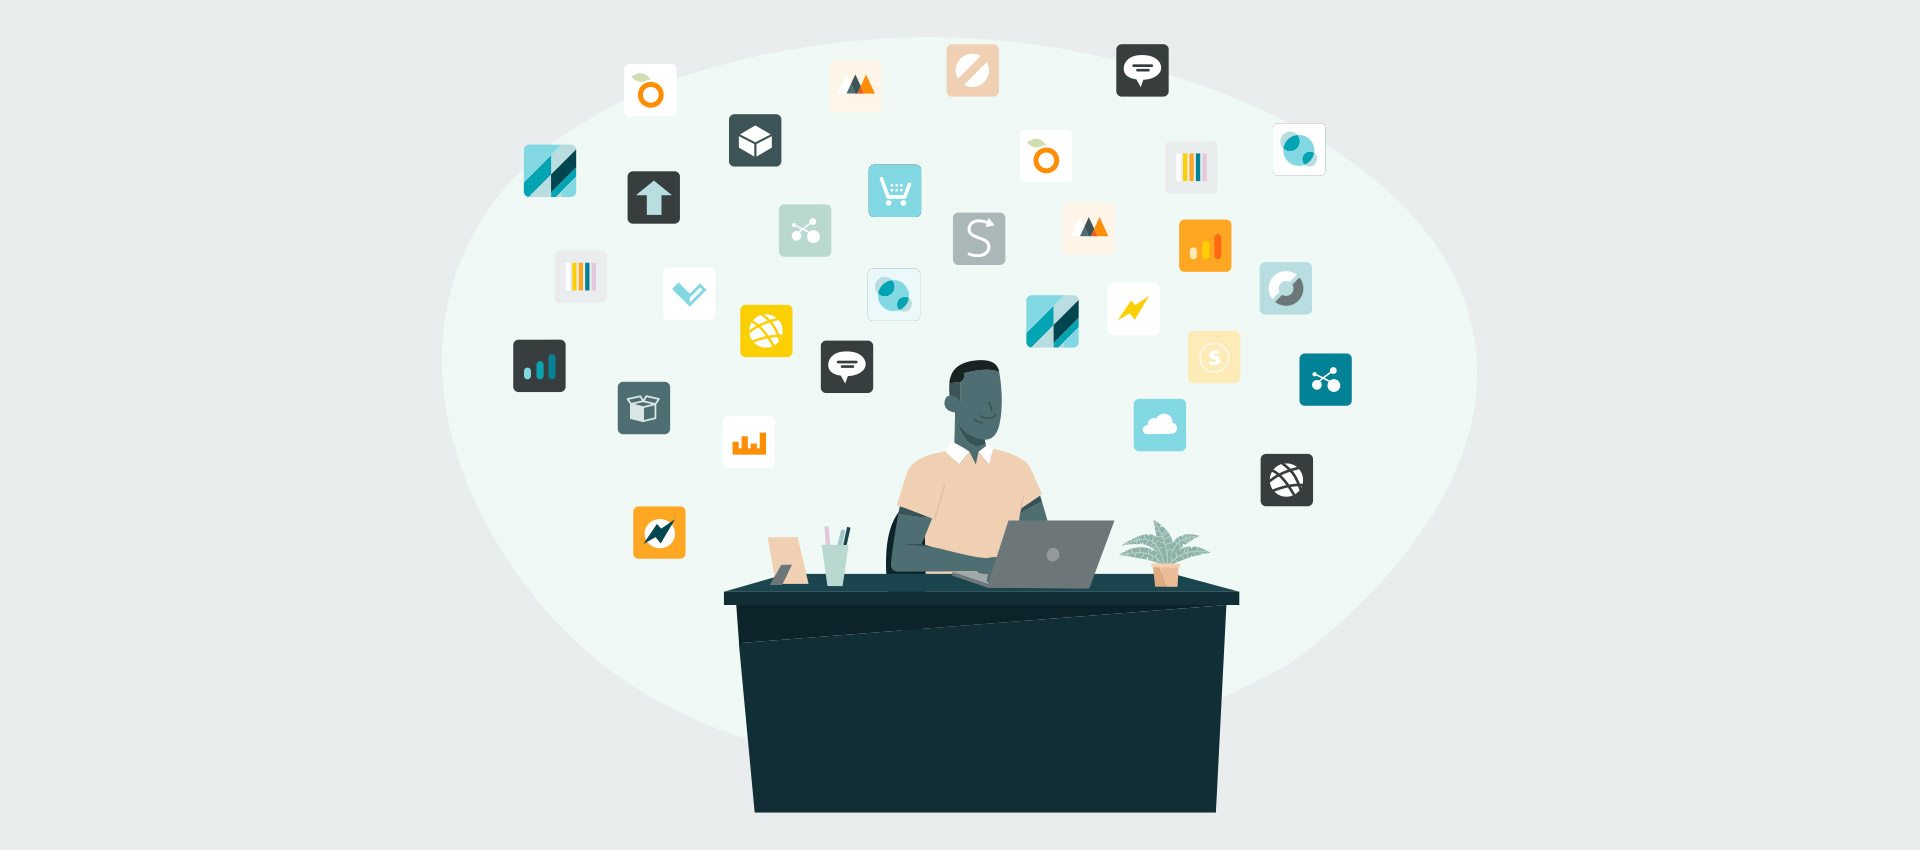 A person at a desk surrounded by icons representing fulfillment options